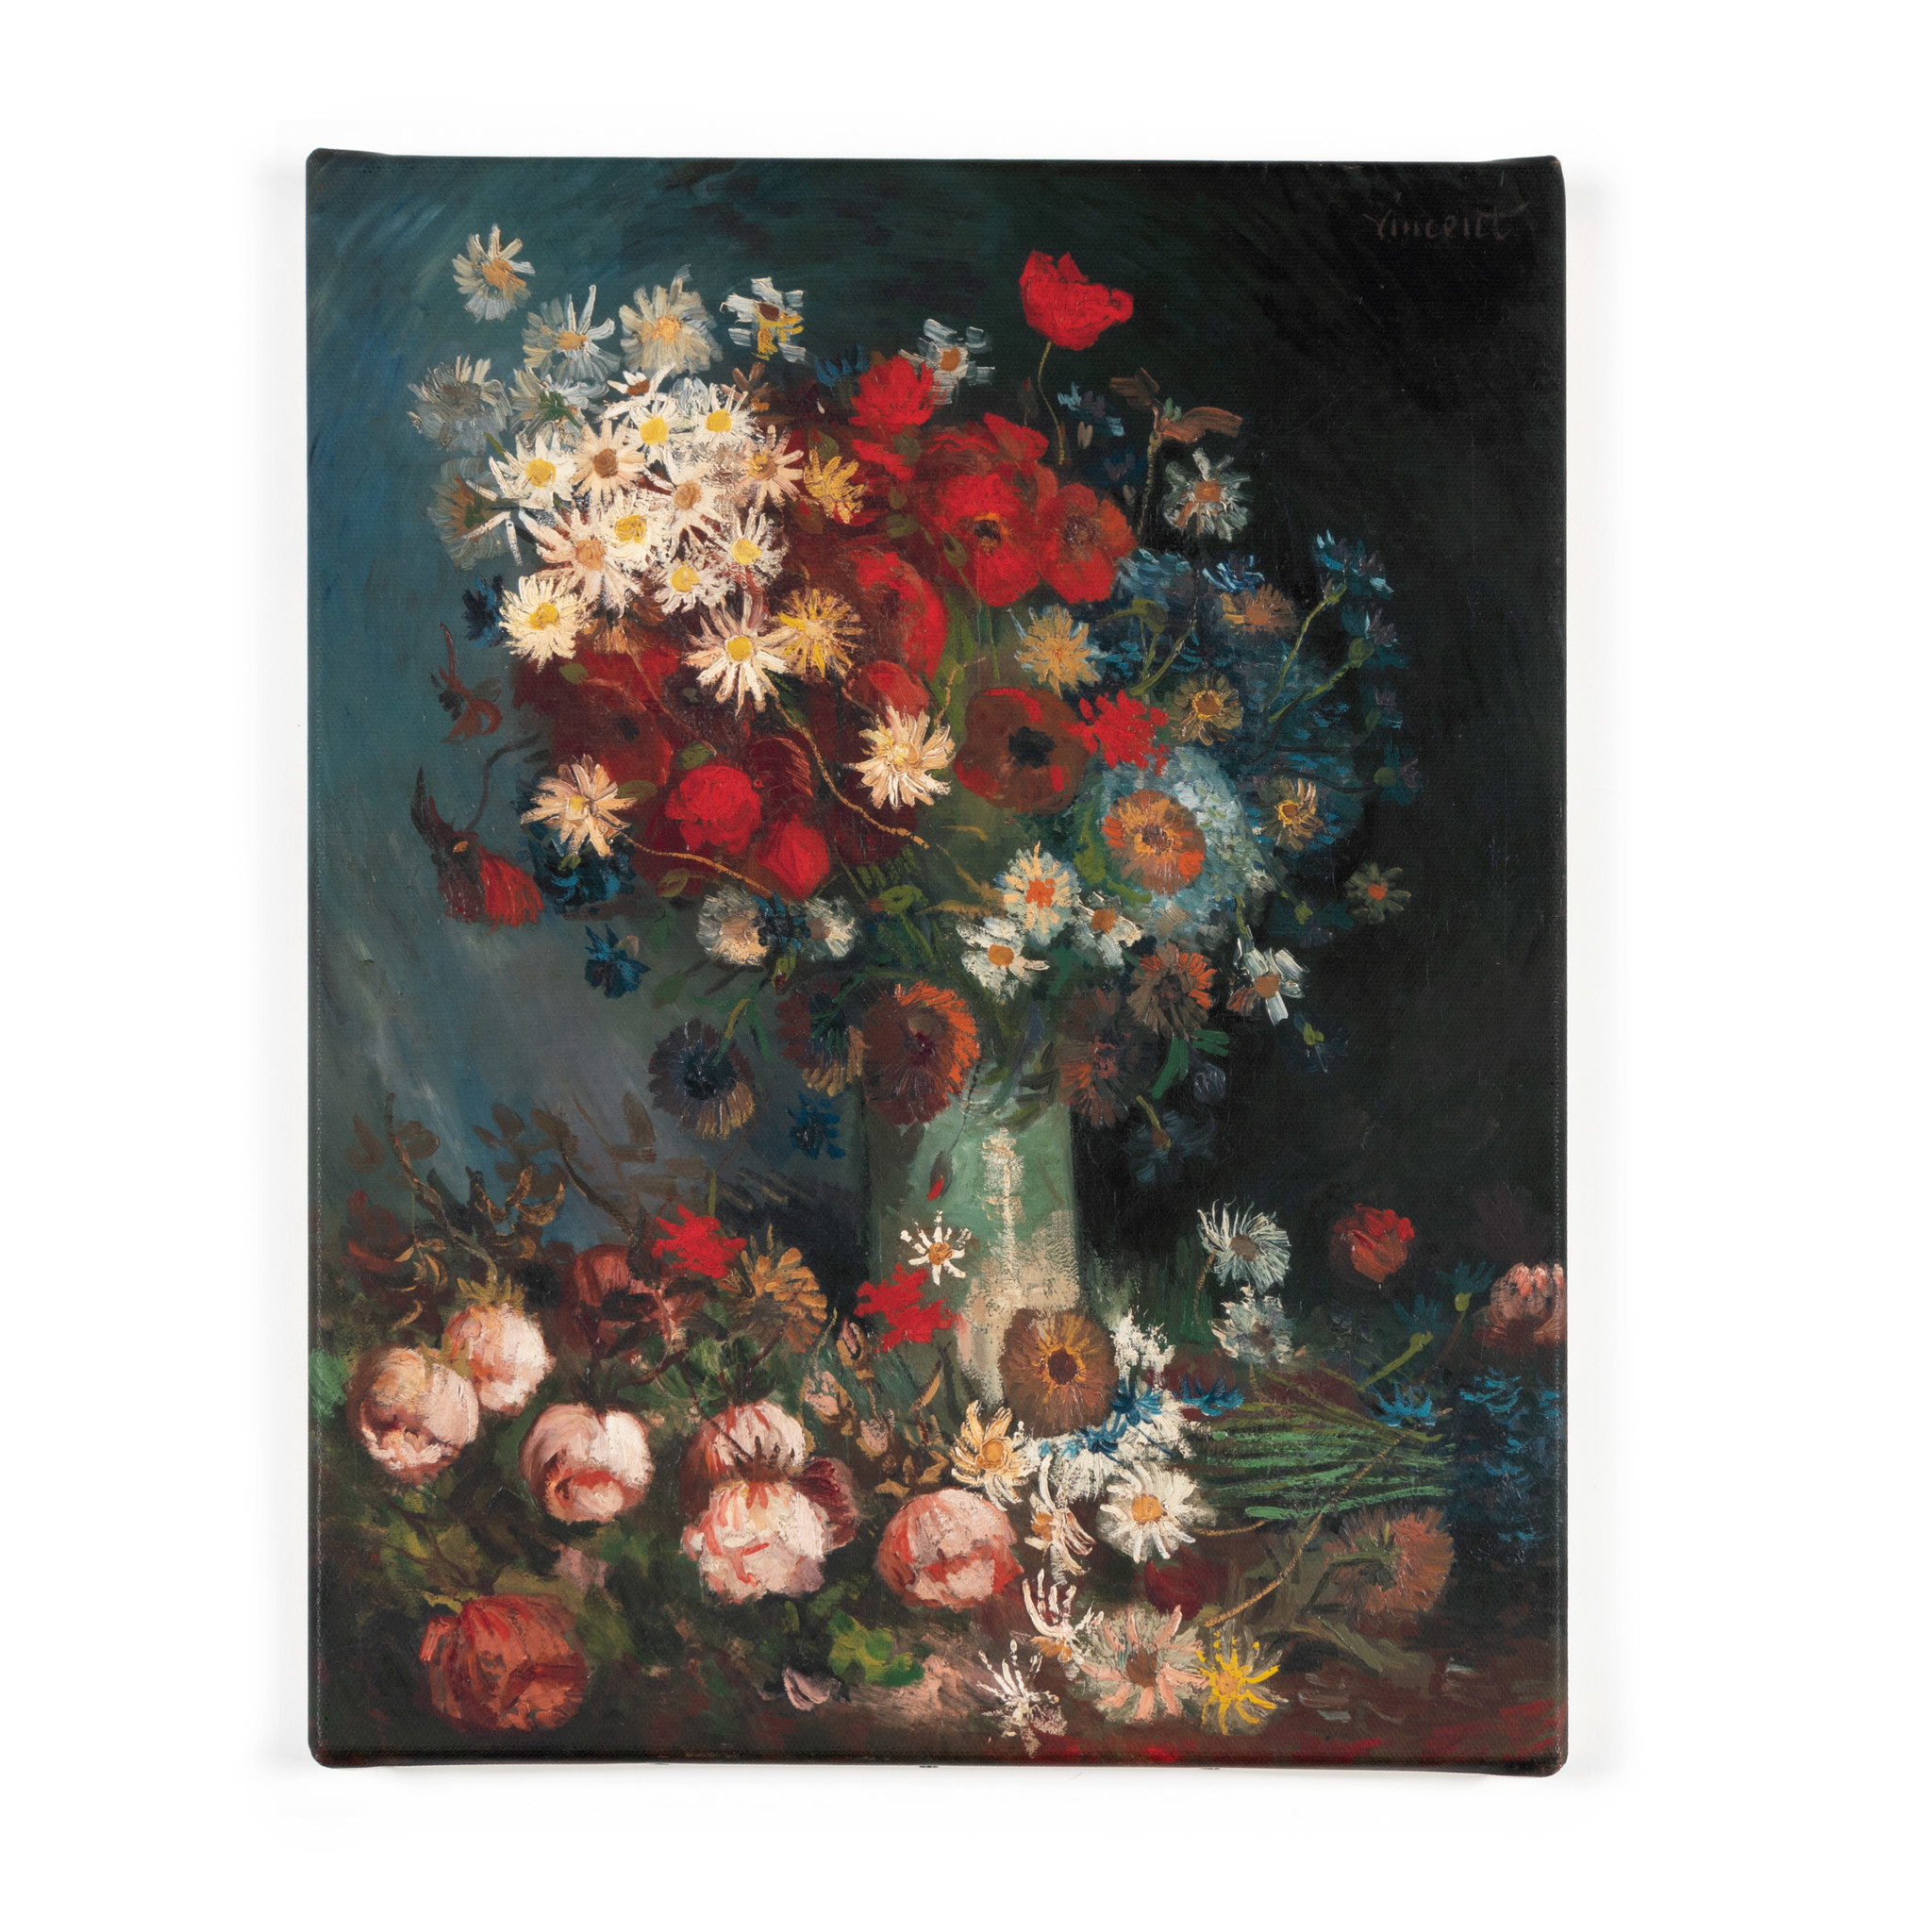 Reproduction canvas Van Gogh Meadow flowers and roses